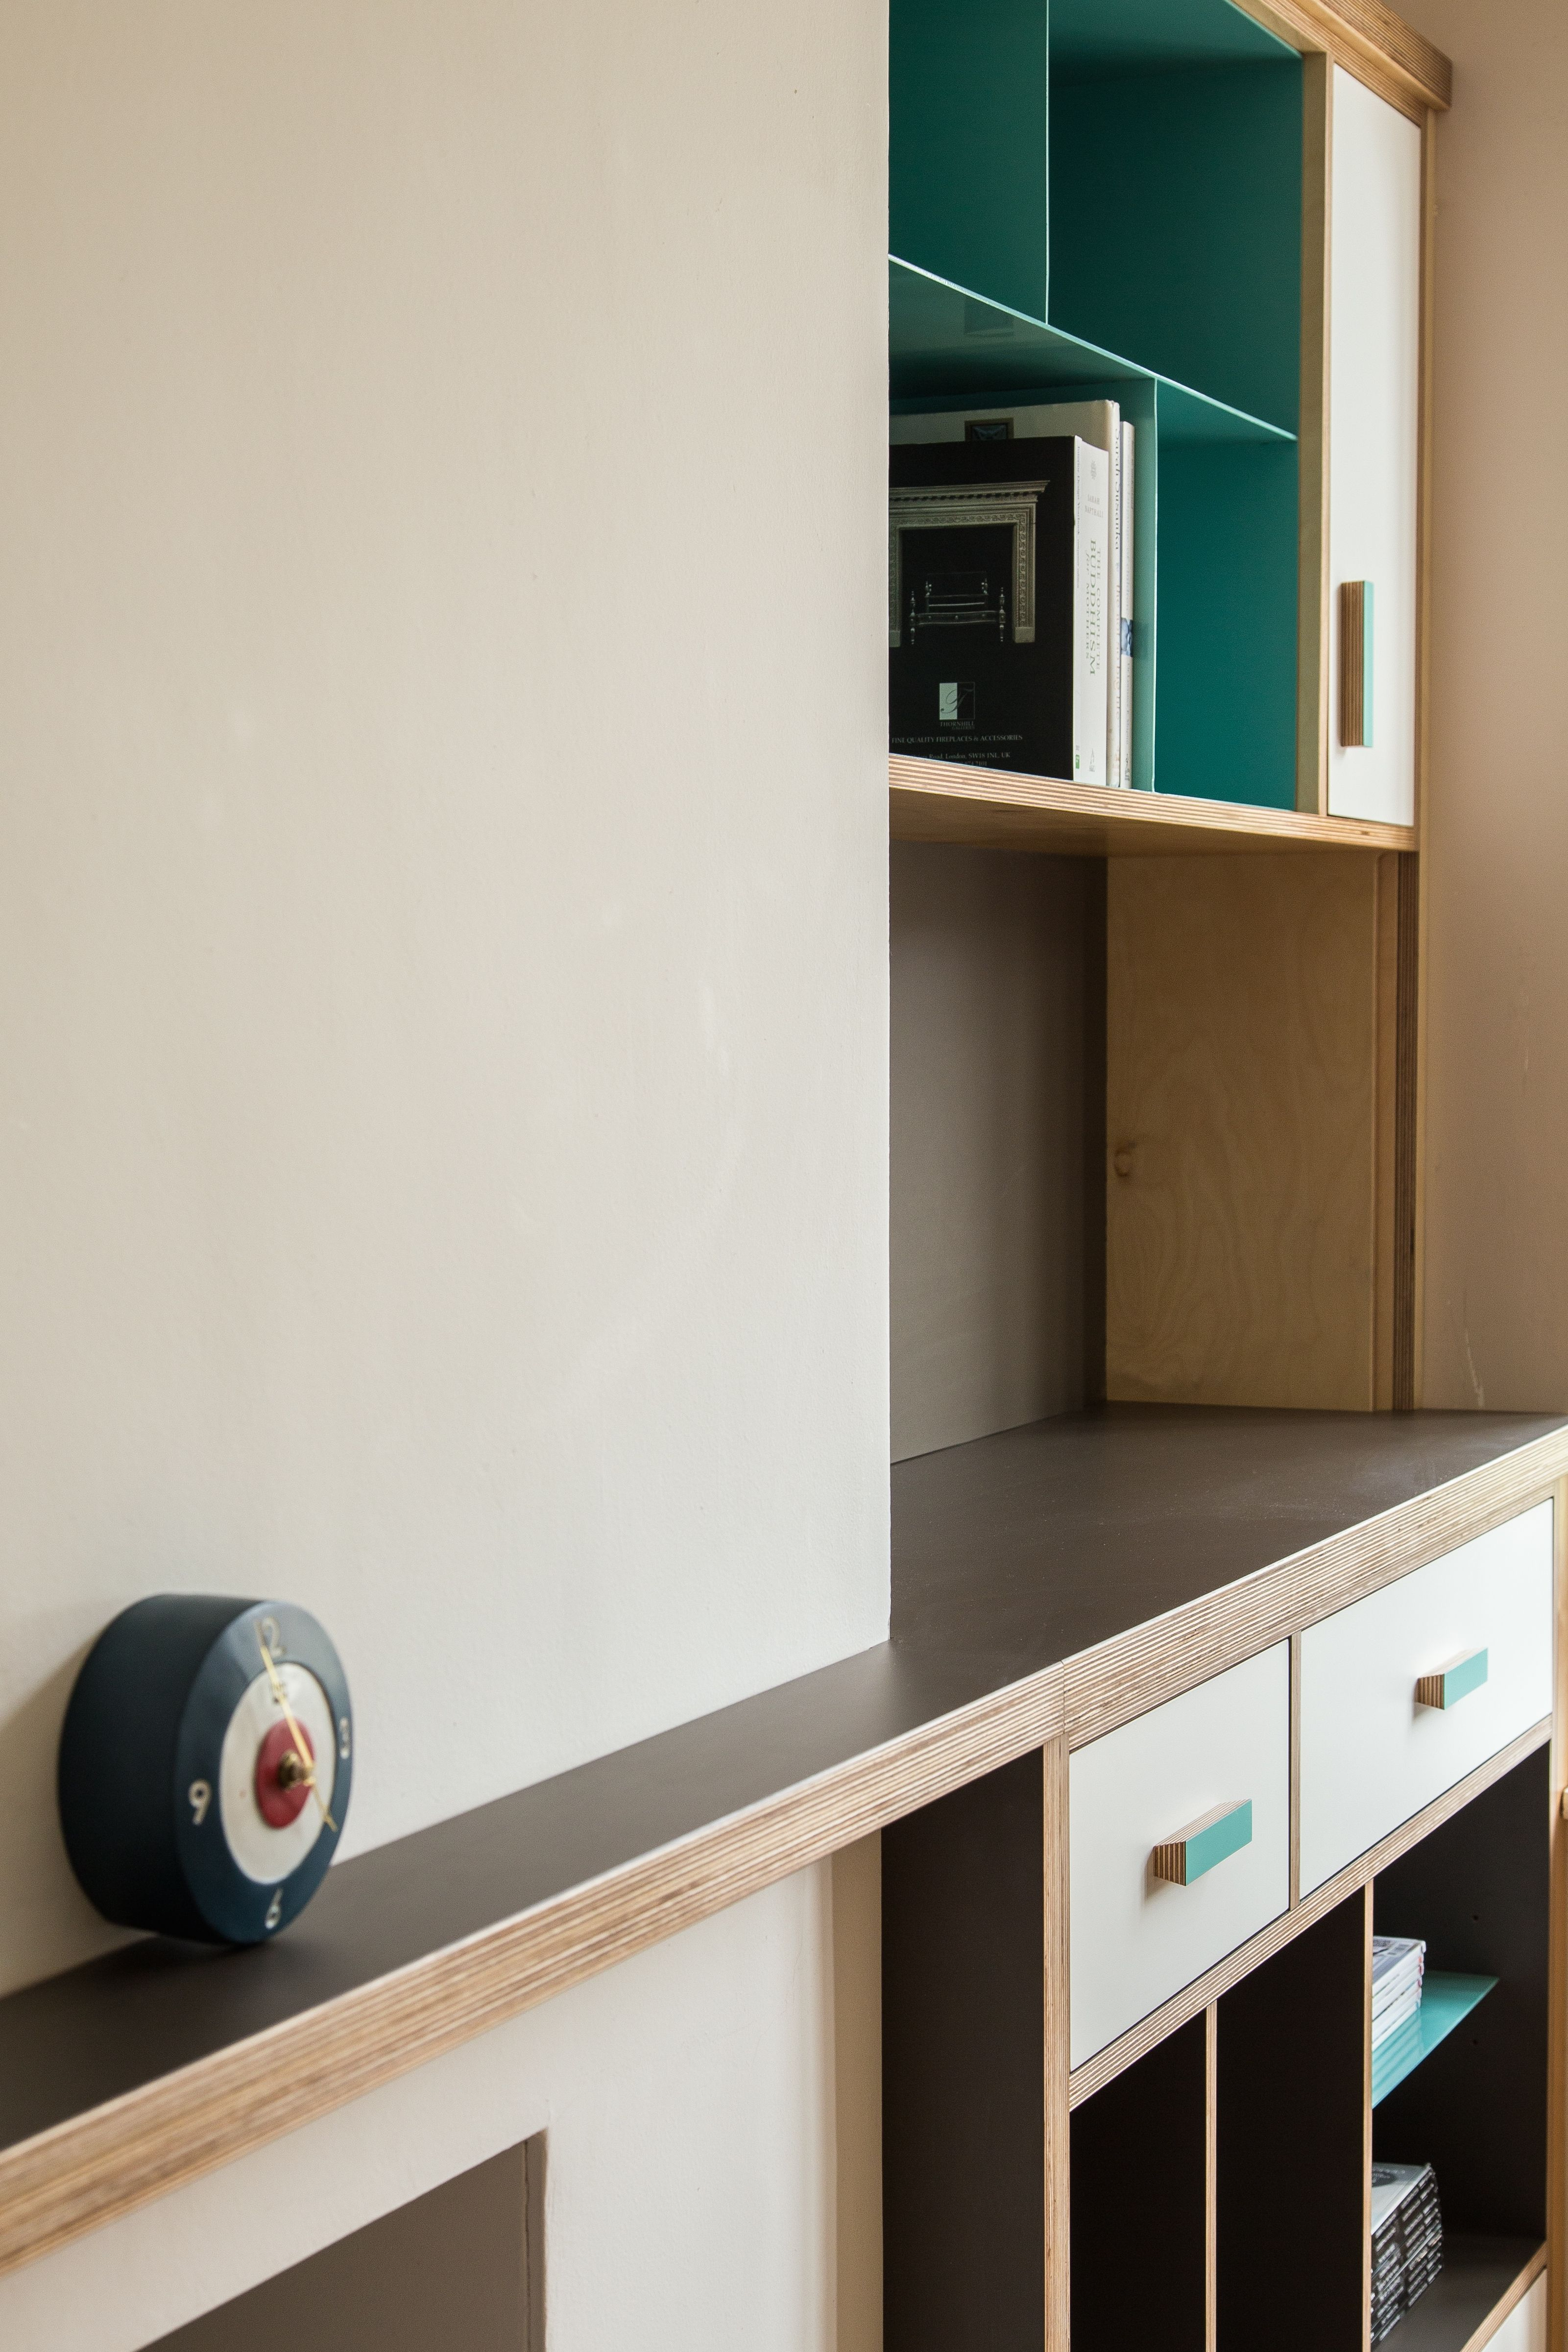 West Bridgford Joinery Handcraft Beautiful Bespoke Furniture For Commercial And Residential Customers Throughout The Uk